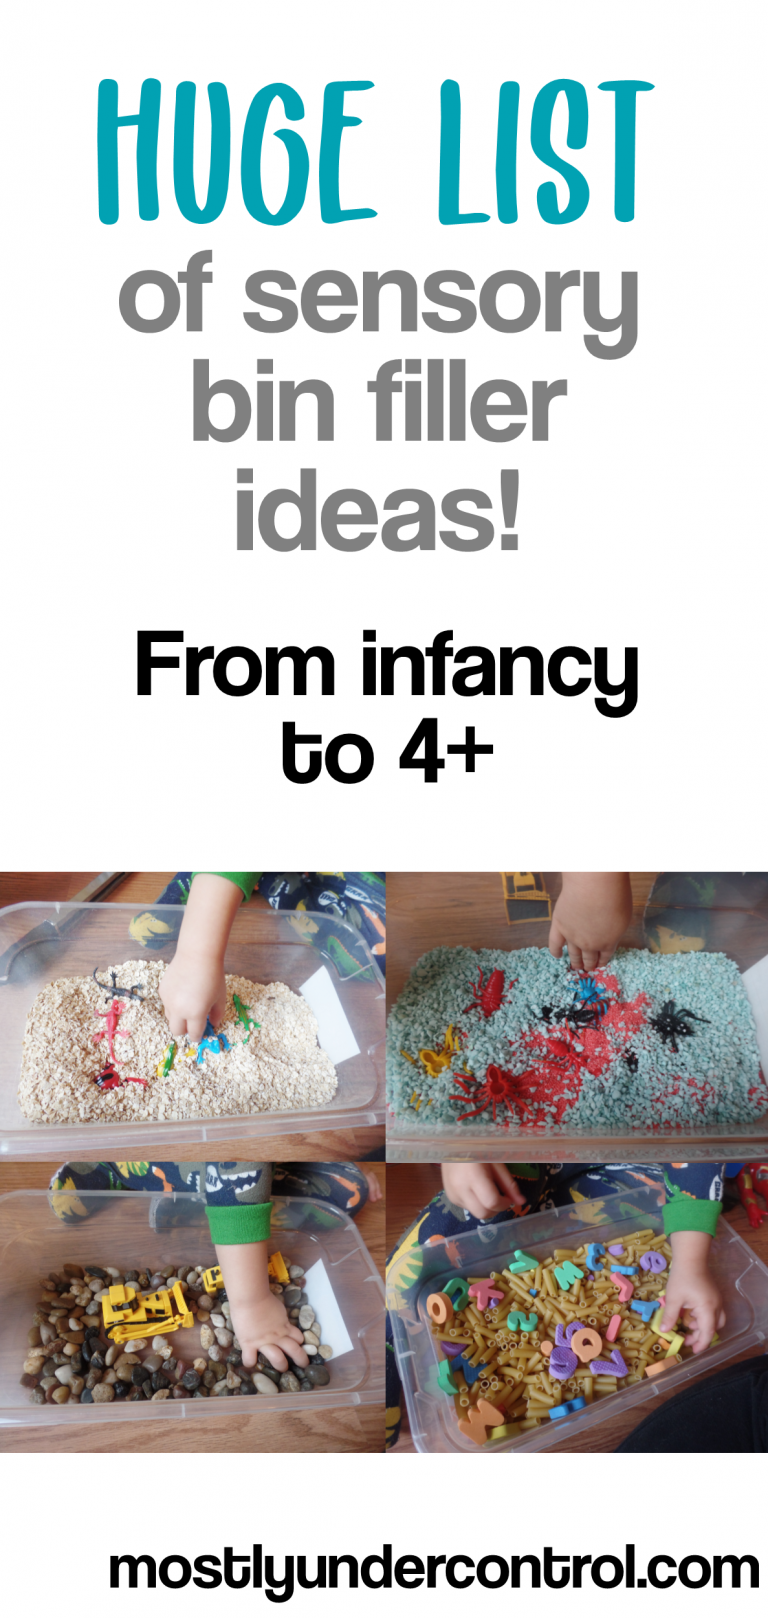 Huge list of sensory bin filler ideas